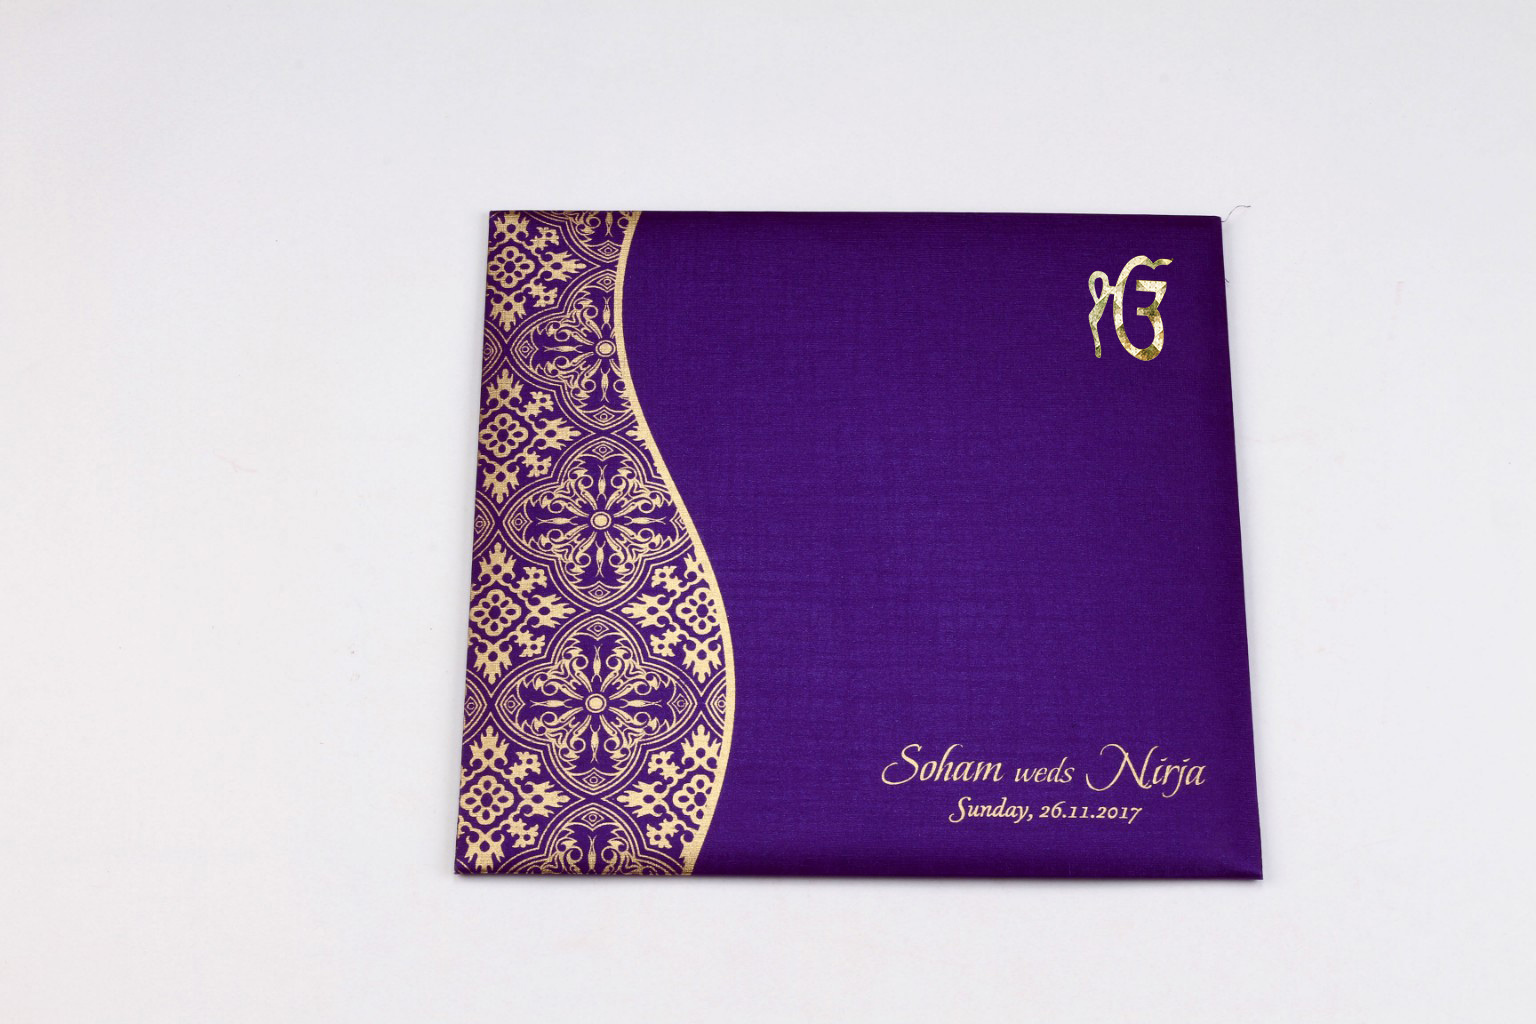 Sikh wedding invite in purple with golden paisley